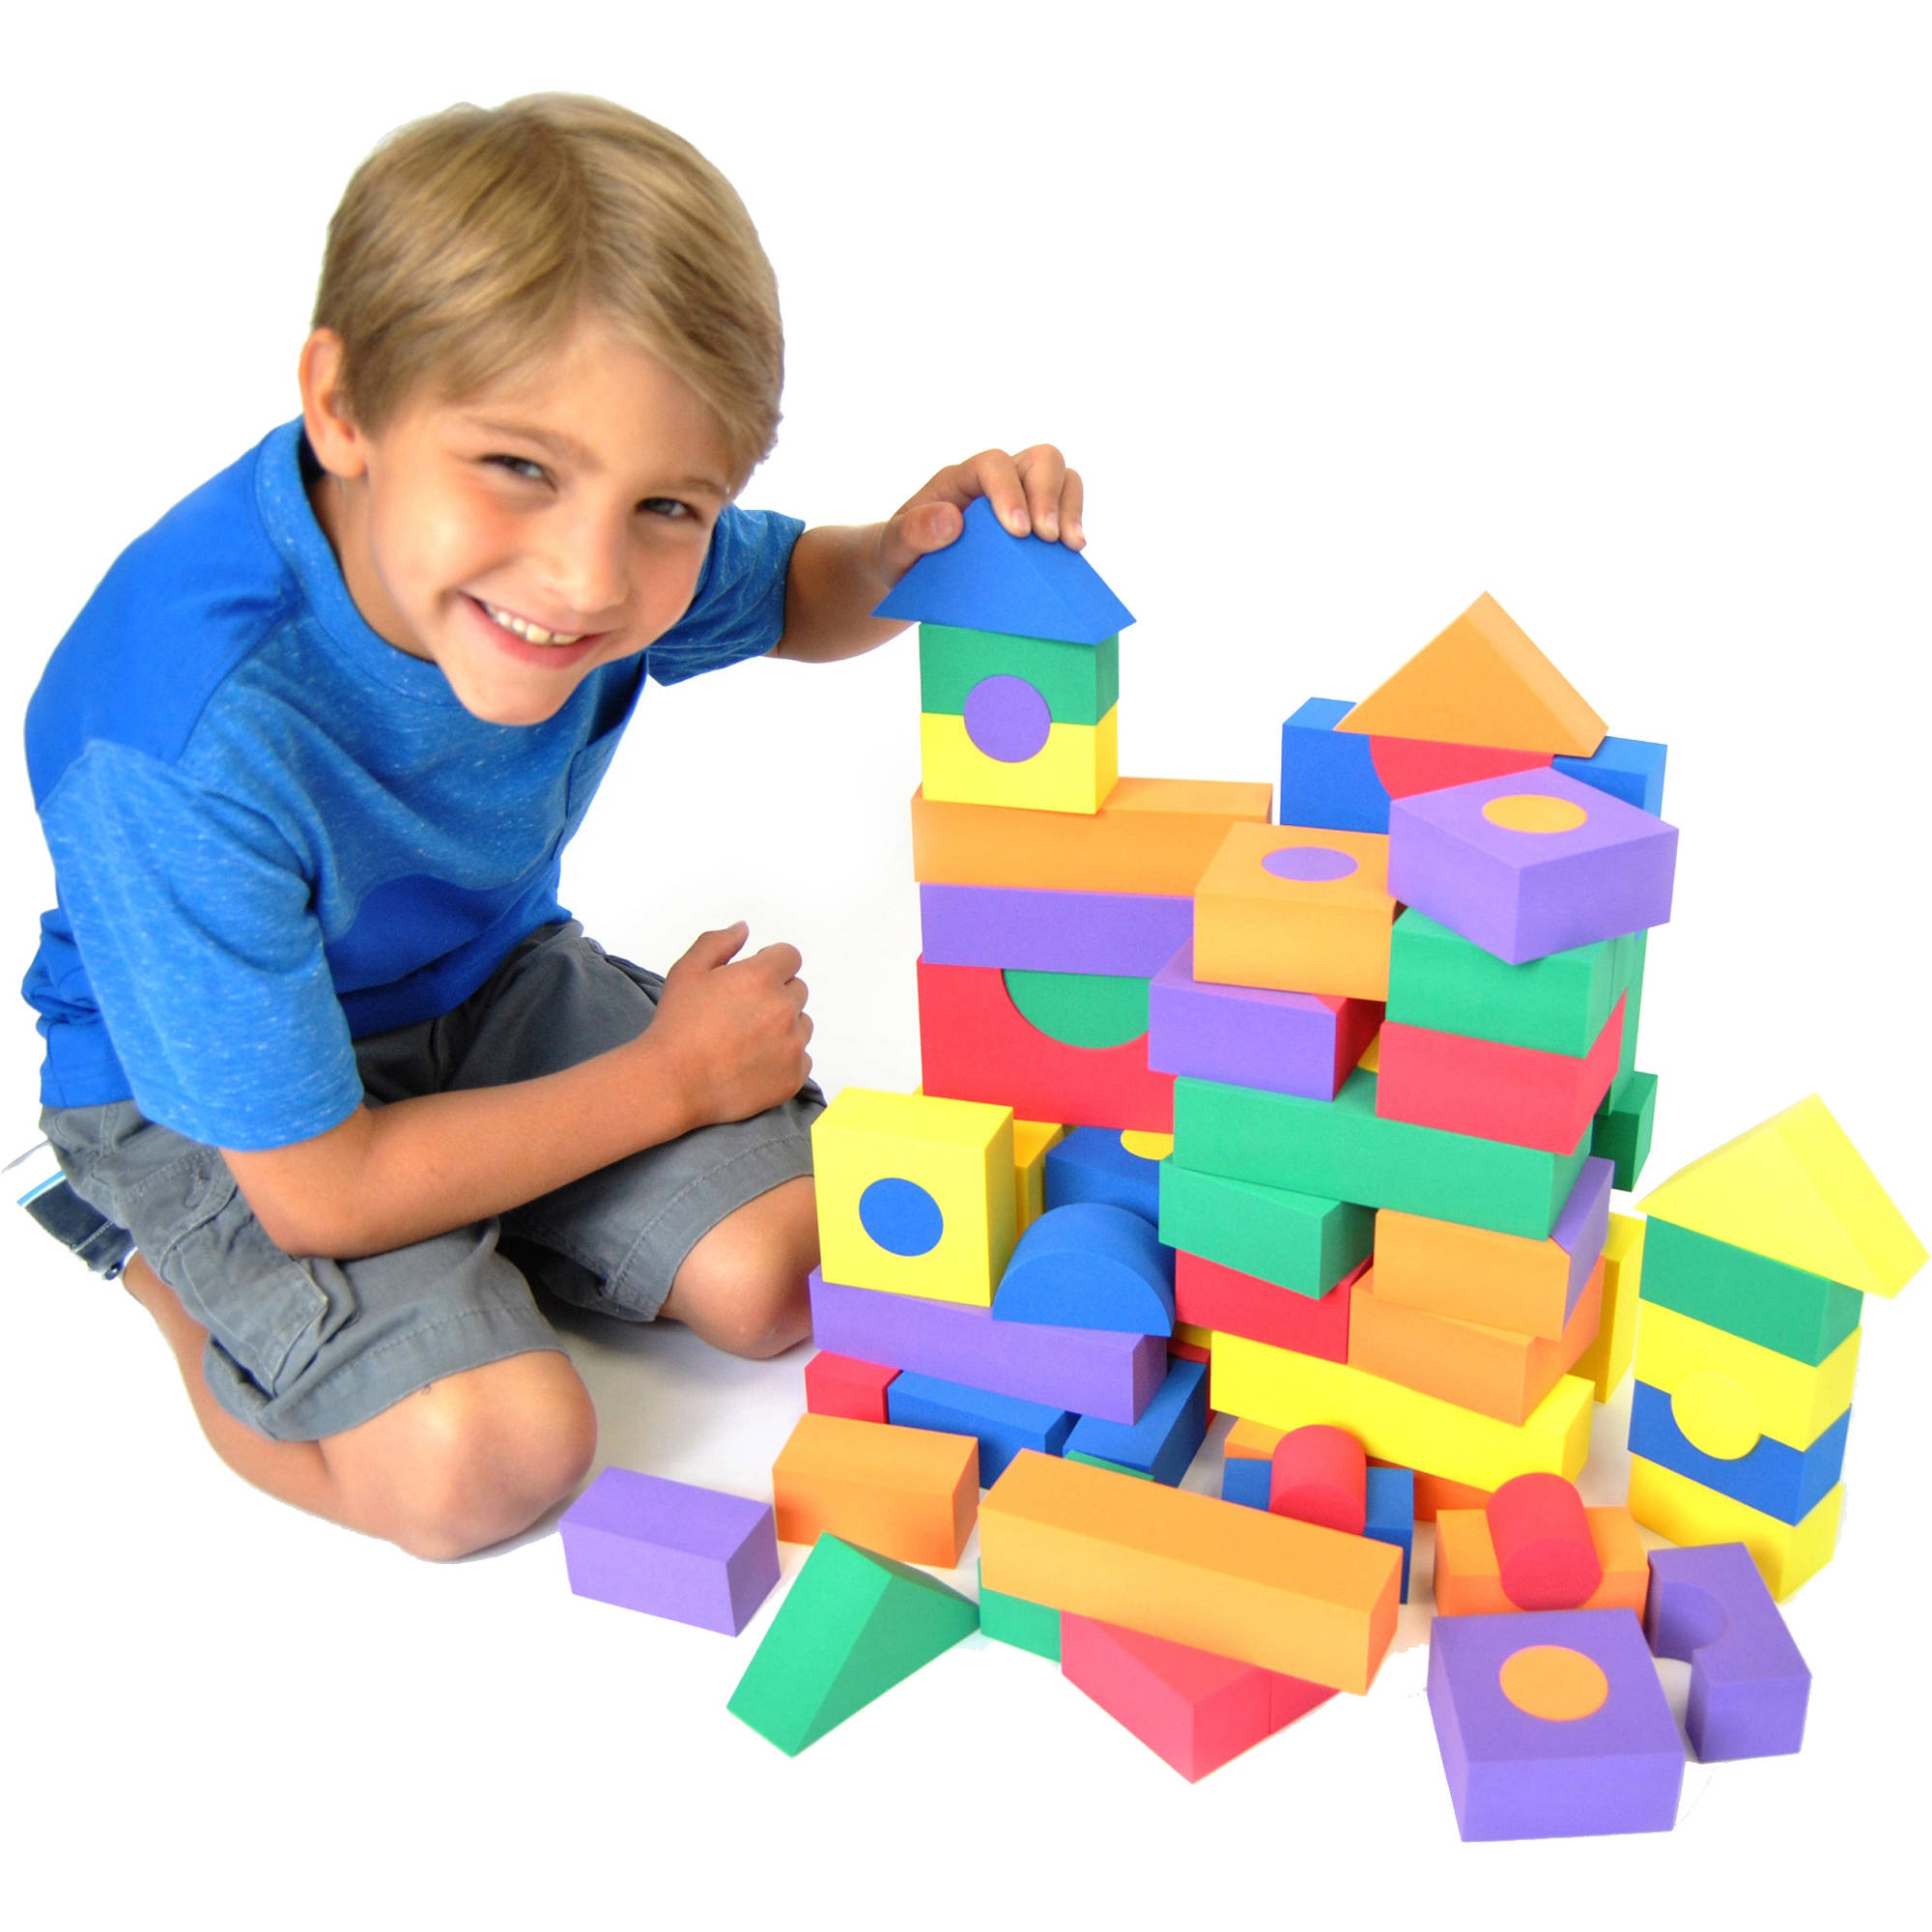 Non-Toxic Foam Wonder Blocks for Children 100pk by WONDER BLOCKS